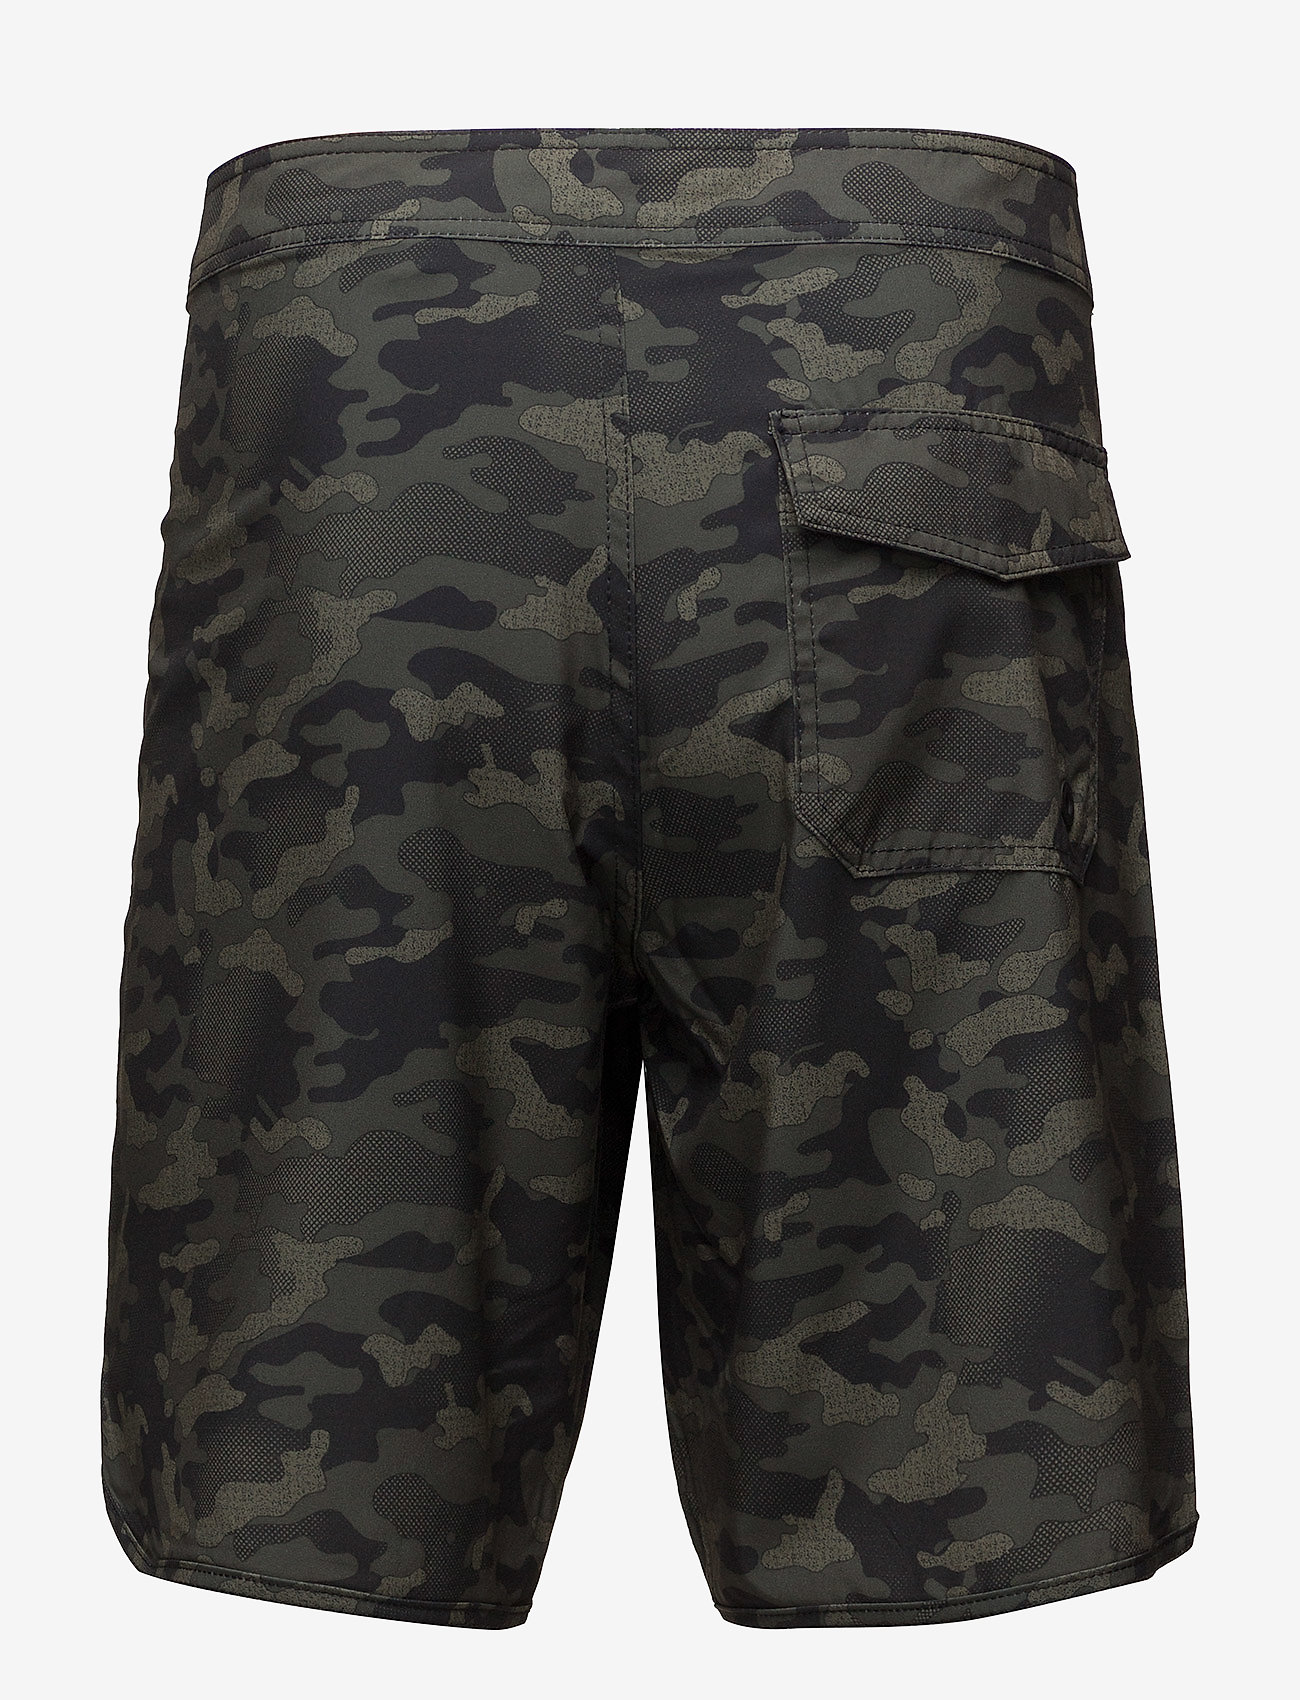 Superdry - DEEP WATER BOARD SHORT - board shorts - khaki camo aop - 1